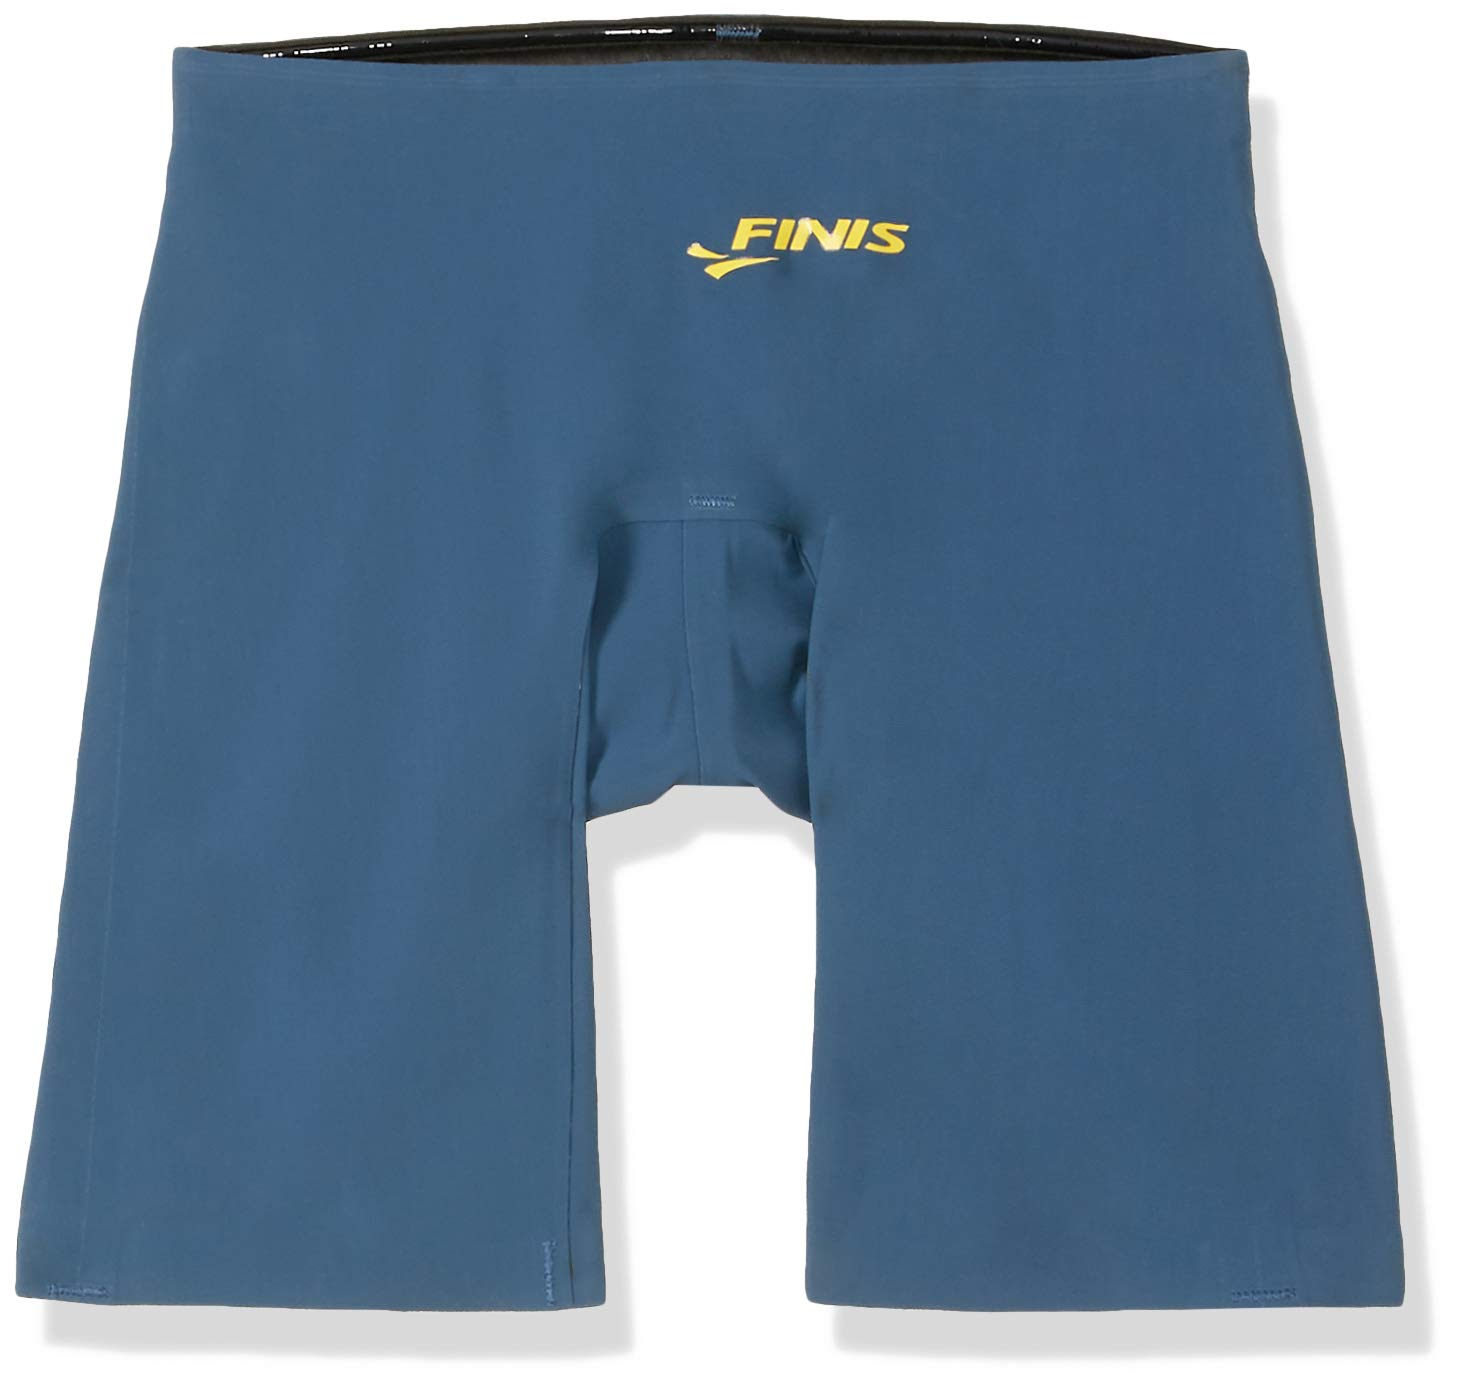 34 Black FINIS Fuse Jammer Technical Racing Suit